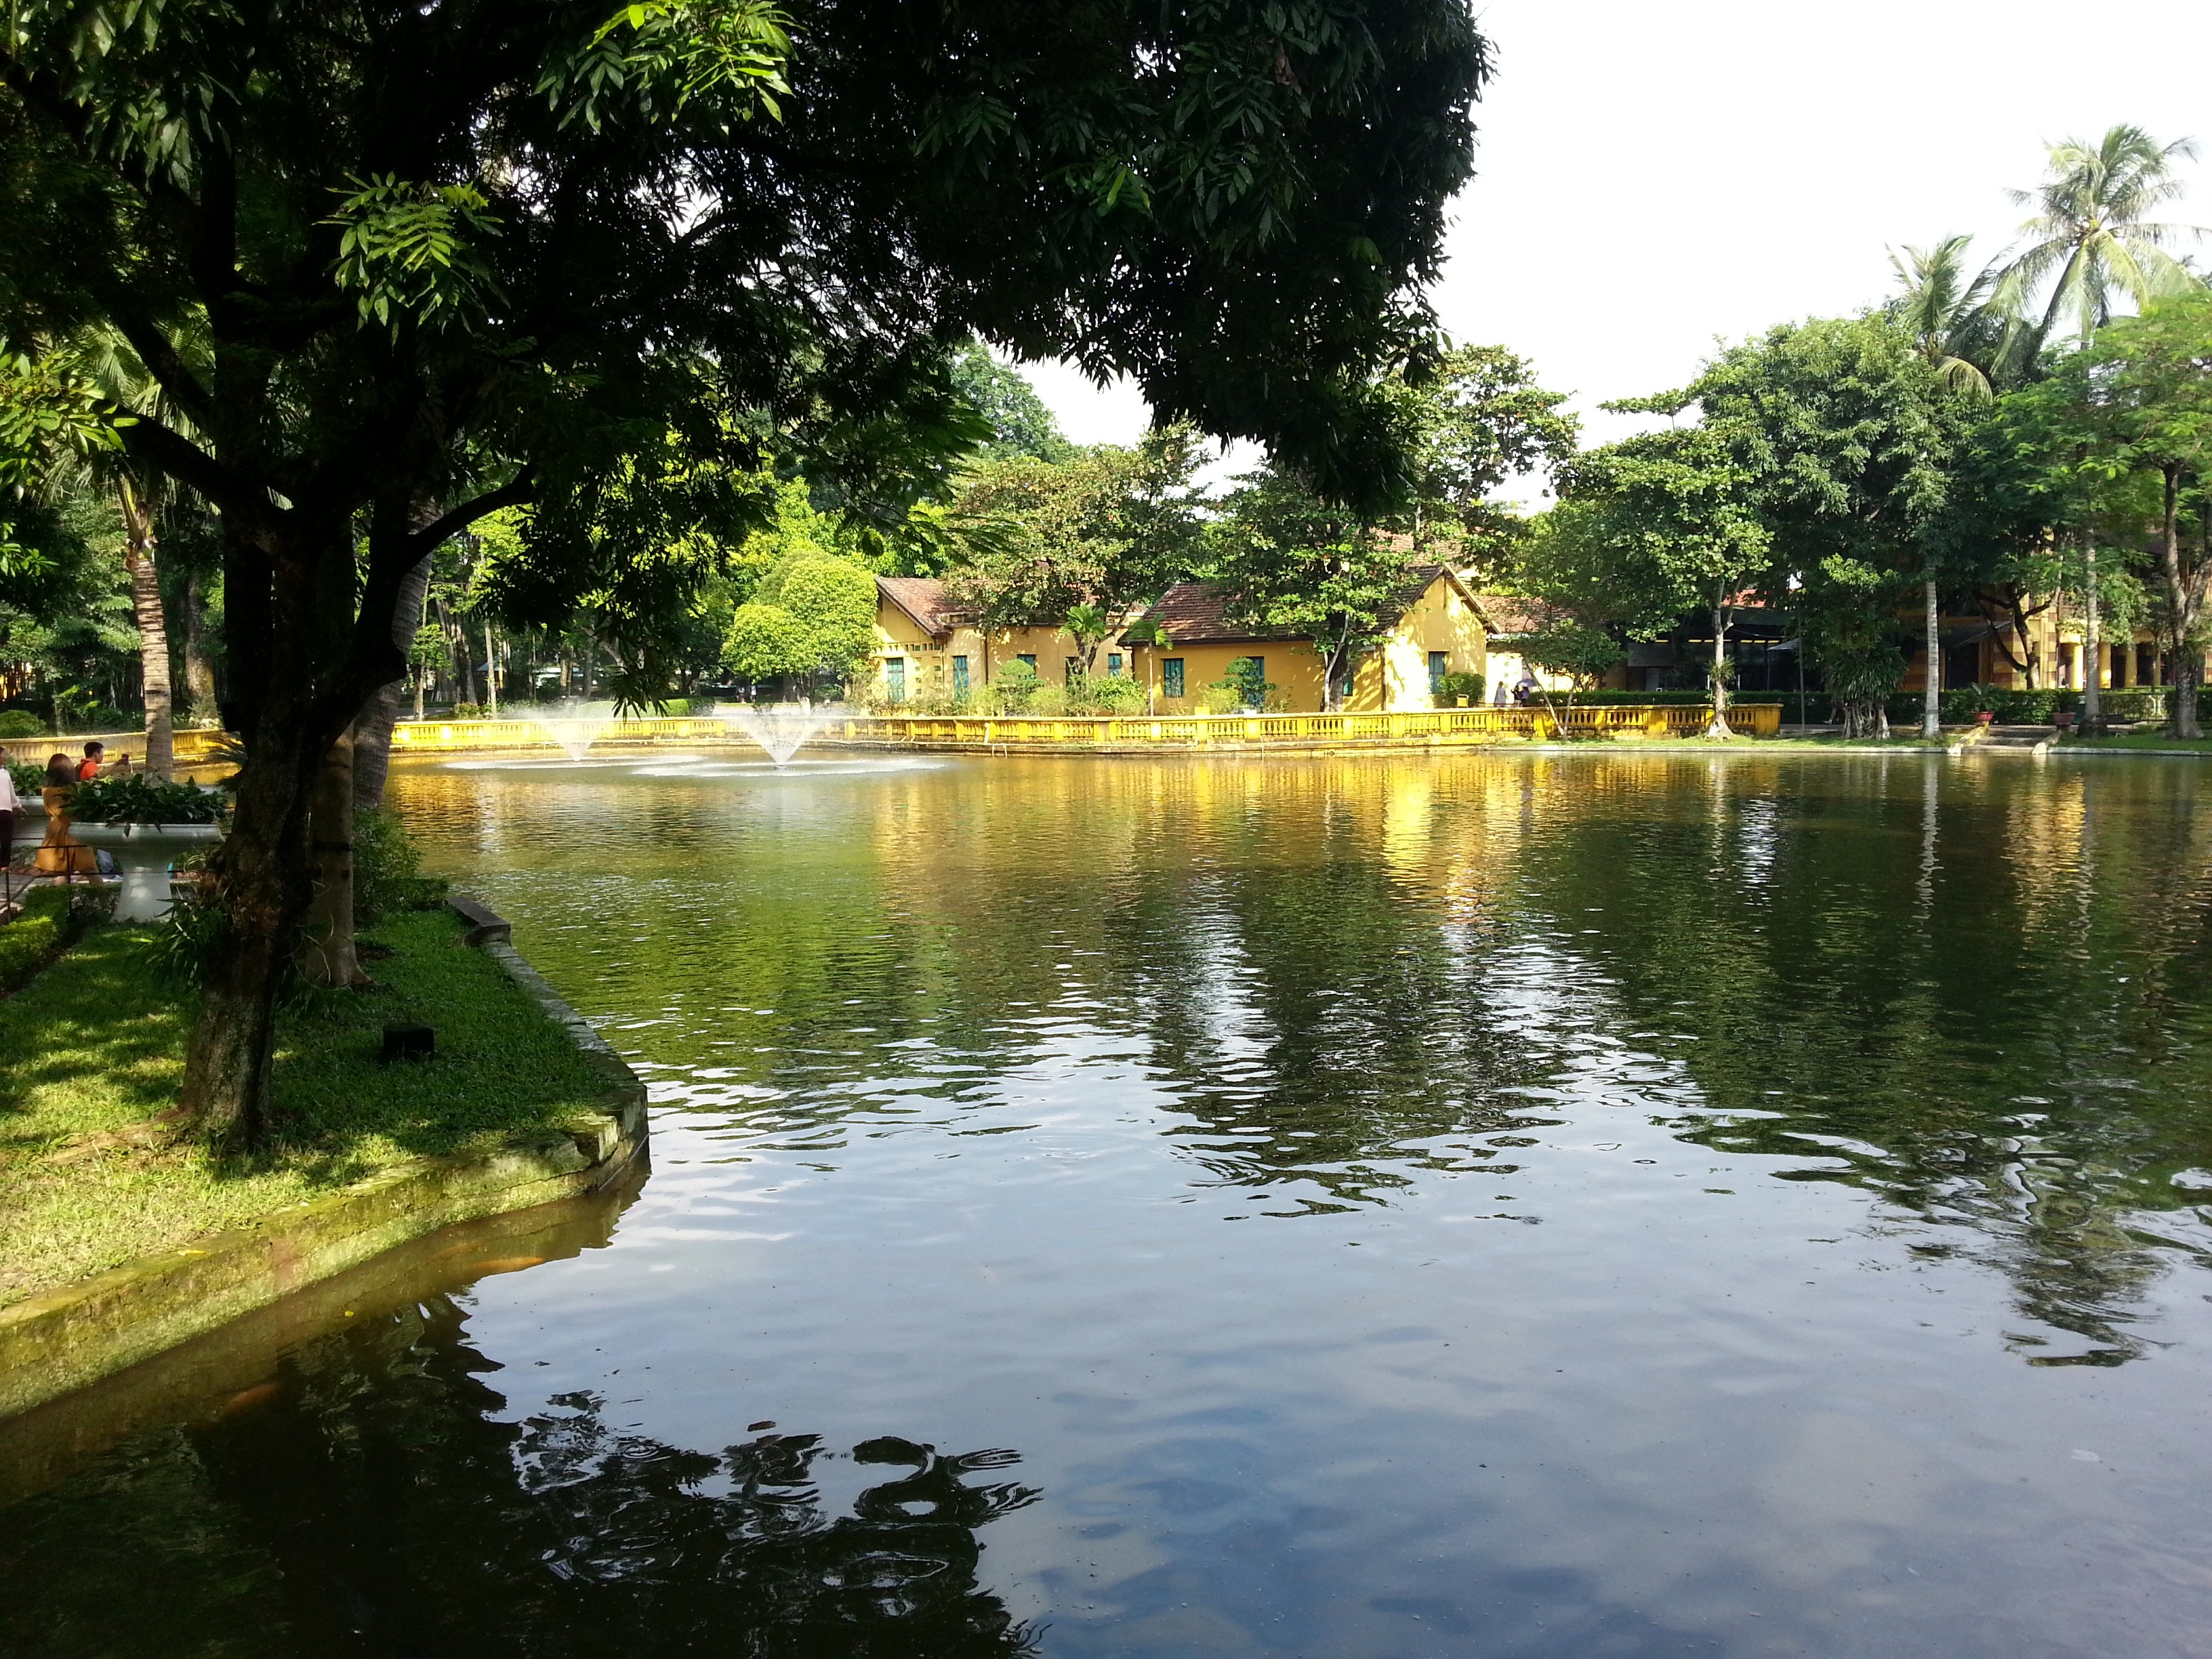 Carp pond at the Presidential Palace